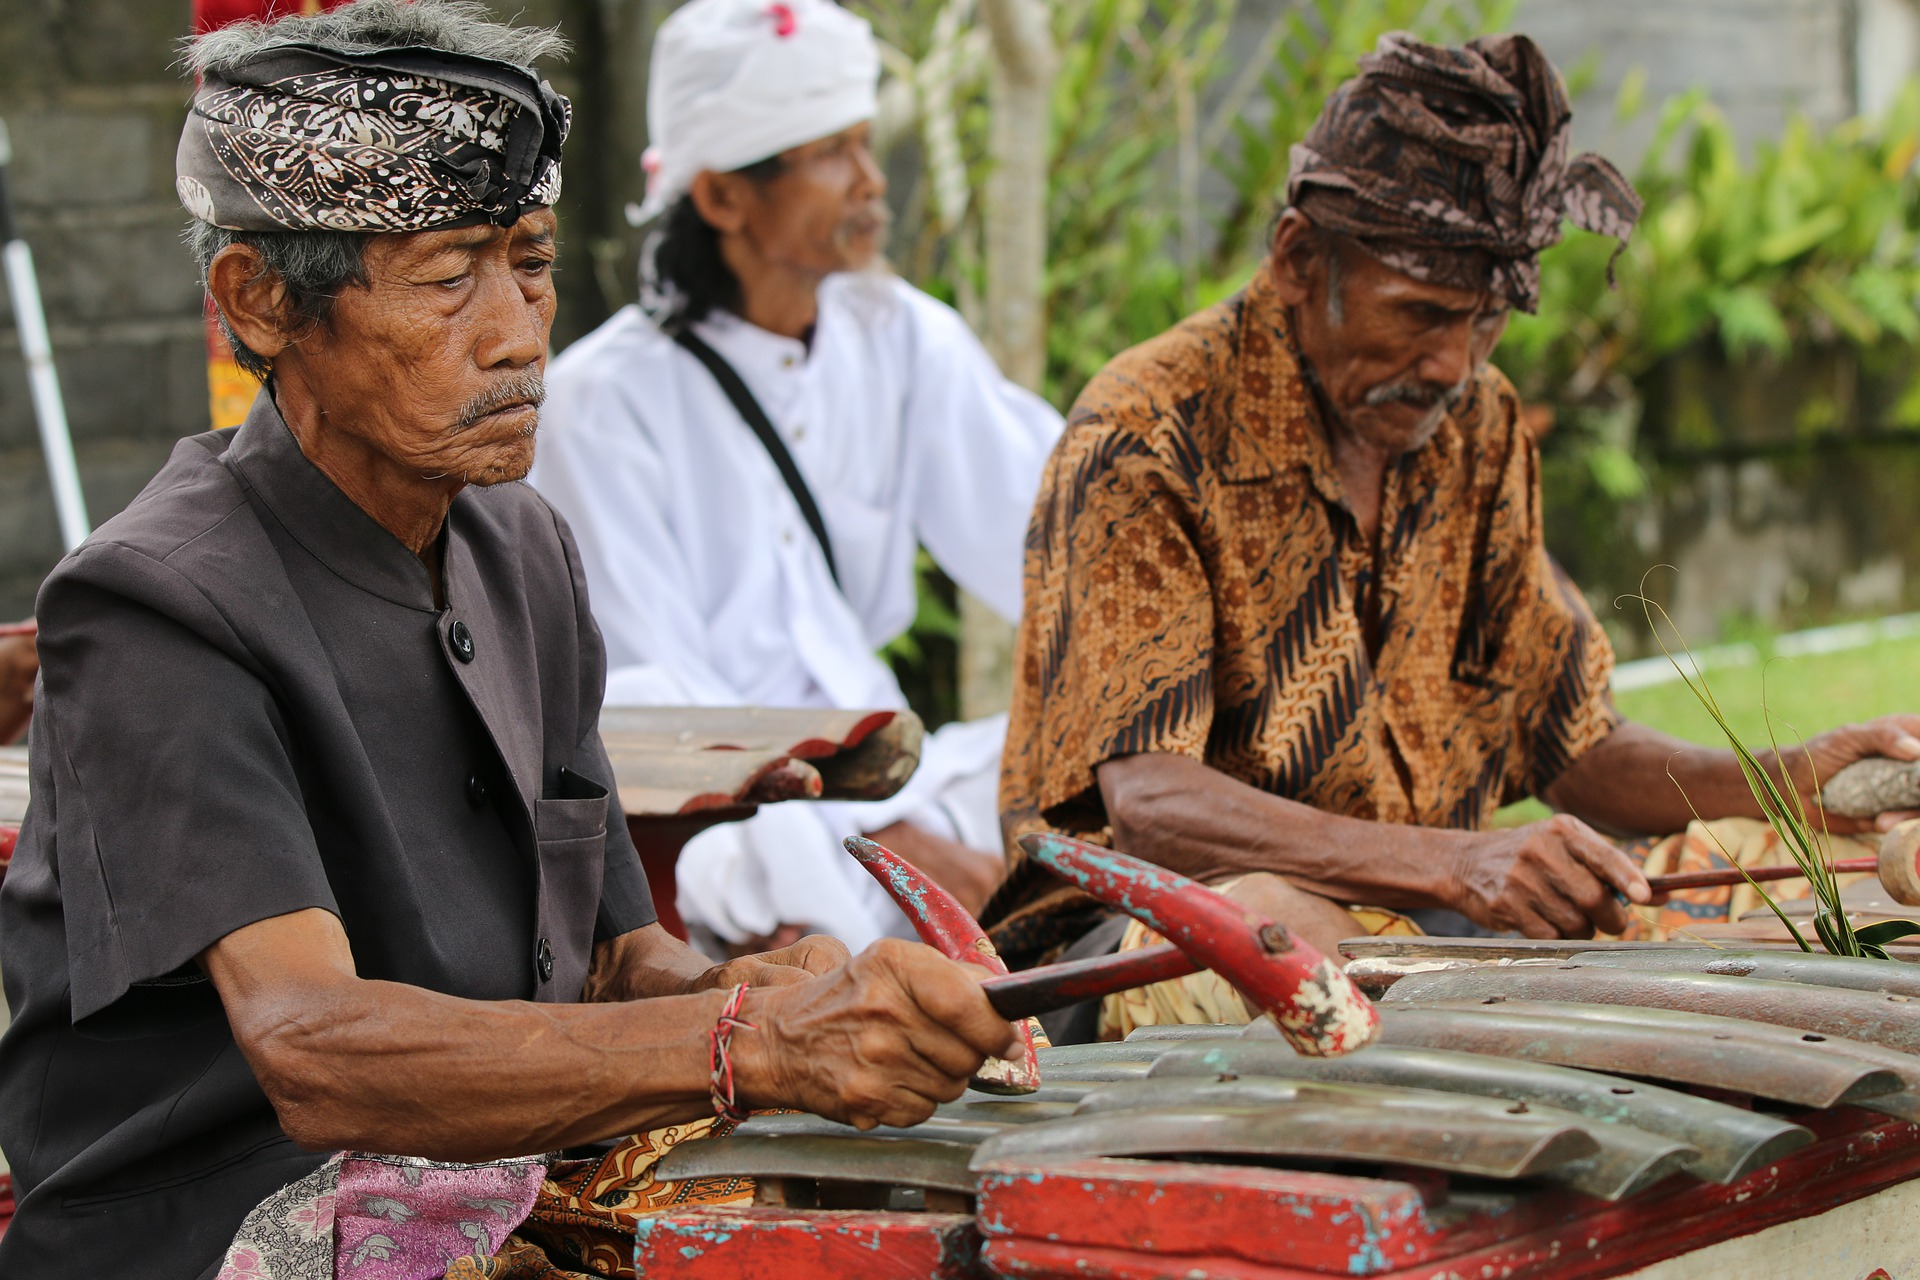 Crédits : Image : https://pixabay.com/fr/photos/gamelan-bali-tradition-indon%C3%A9sie-4319964/.